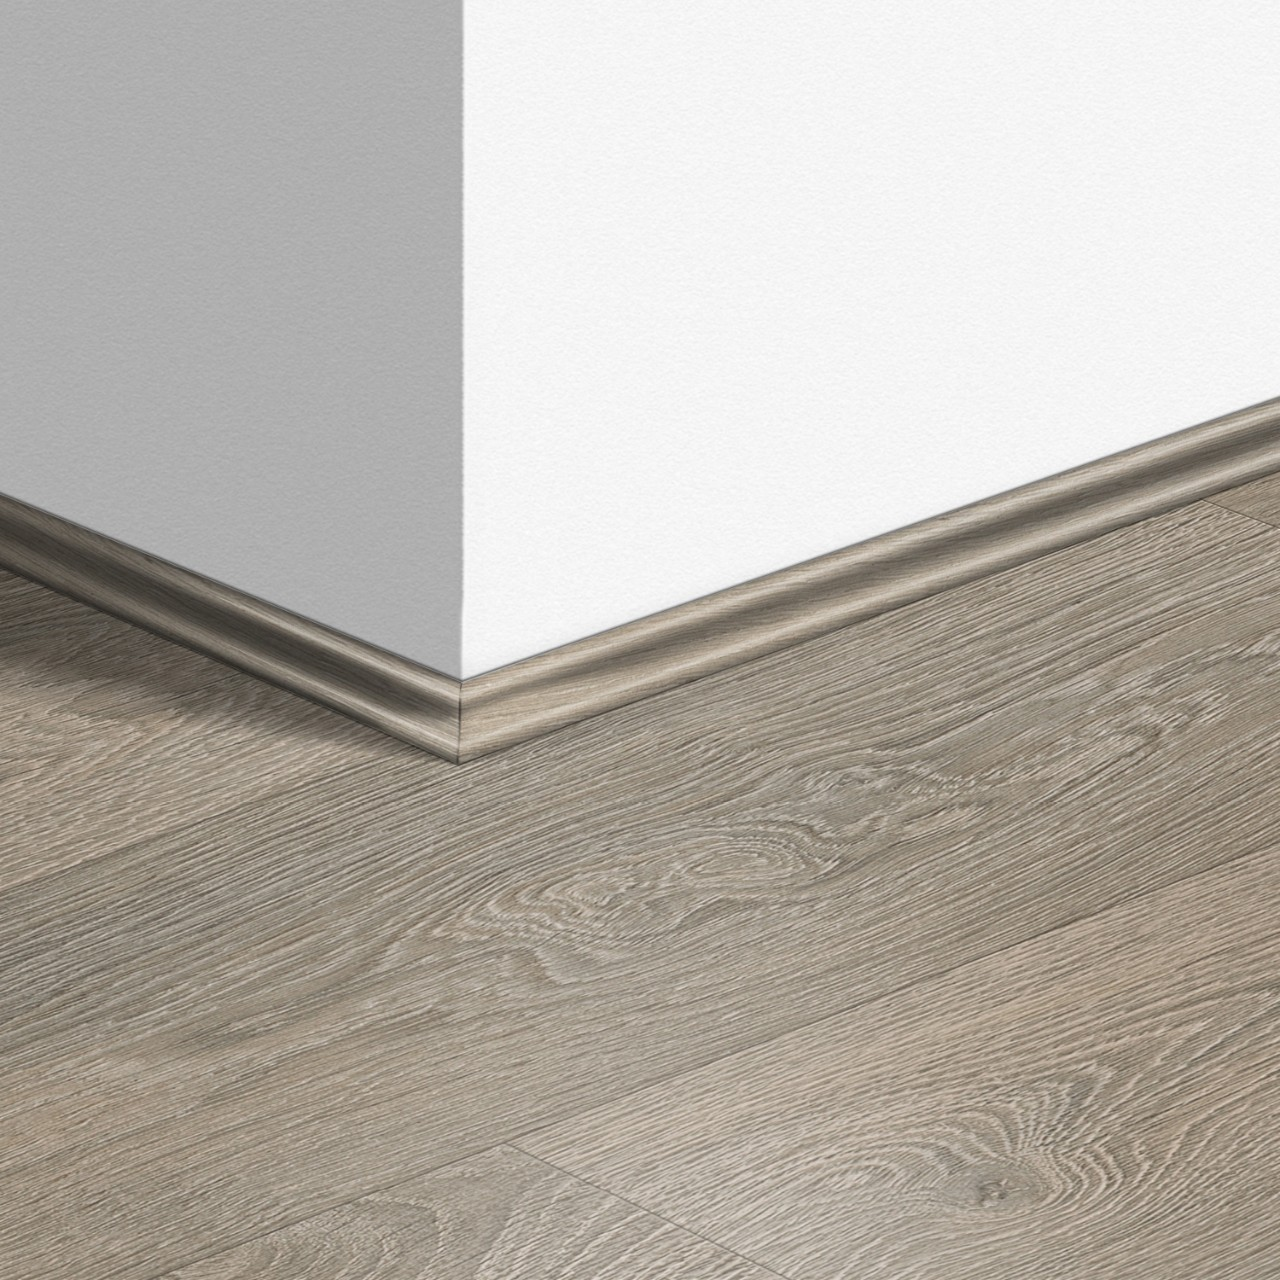 QSSCOT Laminate Accessories Old oak light grey QSSCOT01405